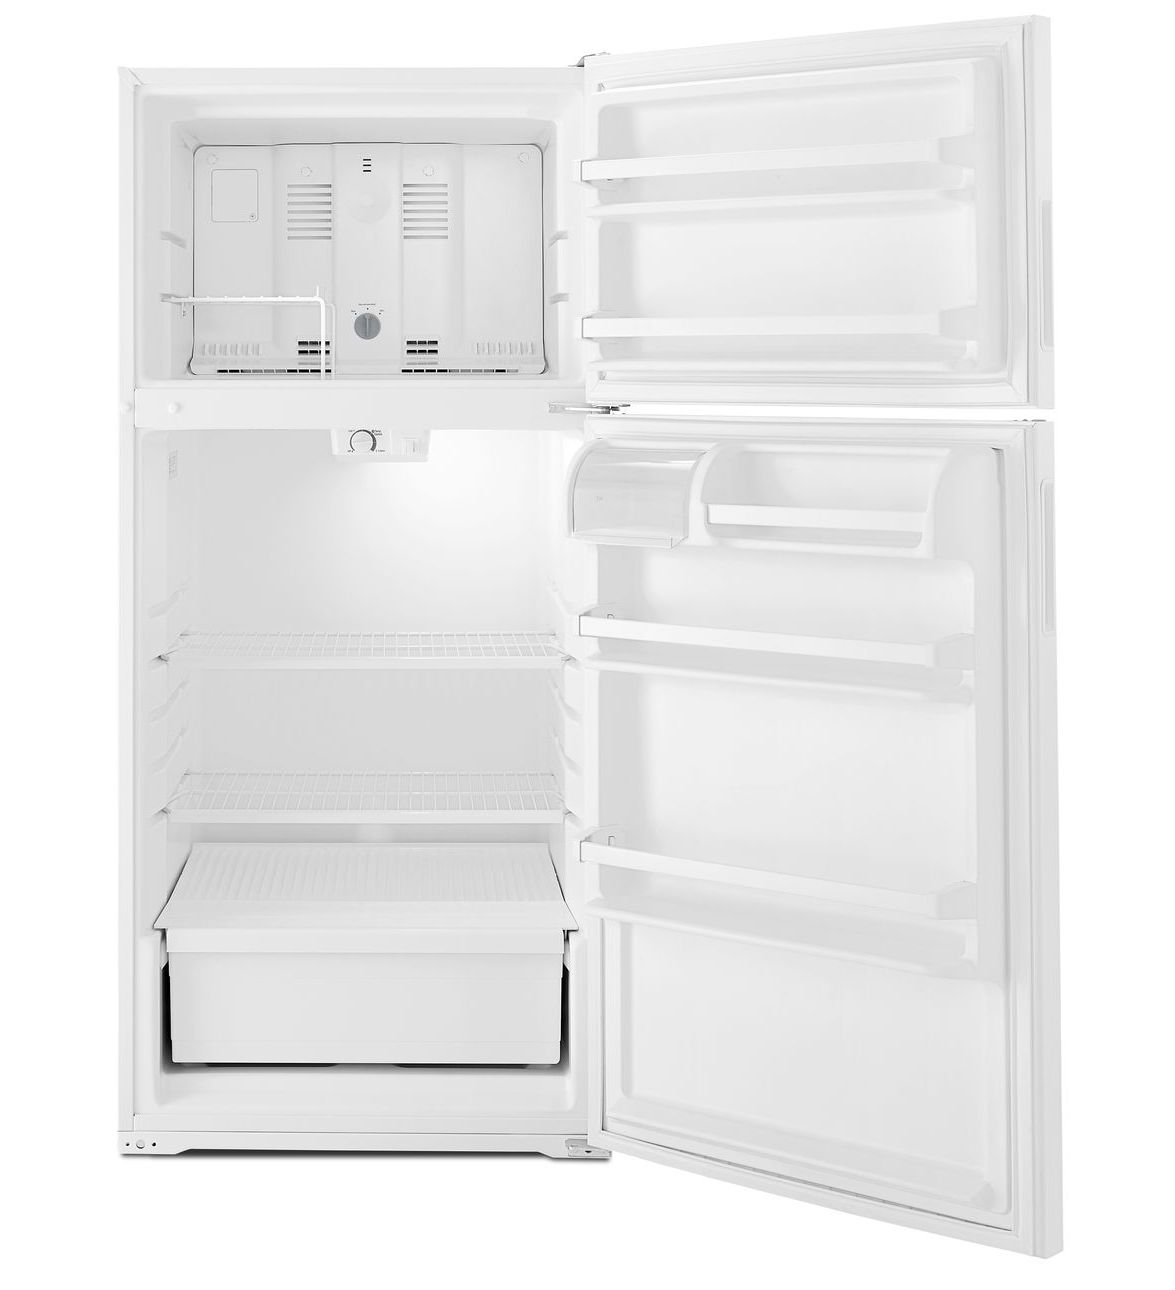 14 Cu Ft Refrigerator Amana 14 Cu Ft Top Freezer Refrigerator With Flexible Storage Options